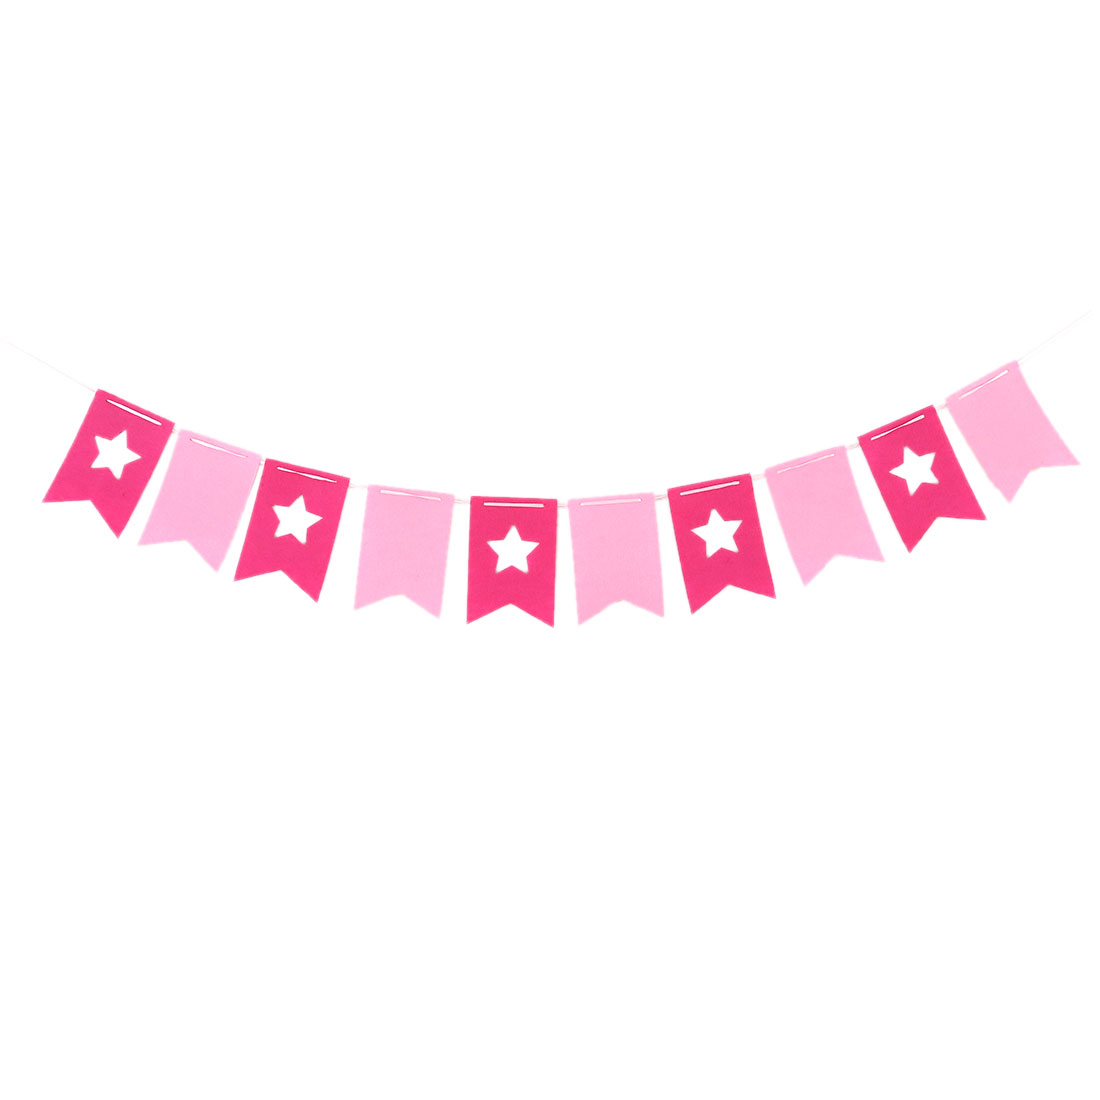 Non-Woven Fabric DIY Wedding Party Decoration Photo Prop Banner Fuchsia Pink